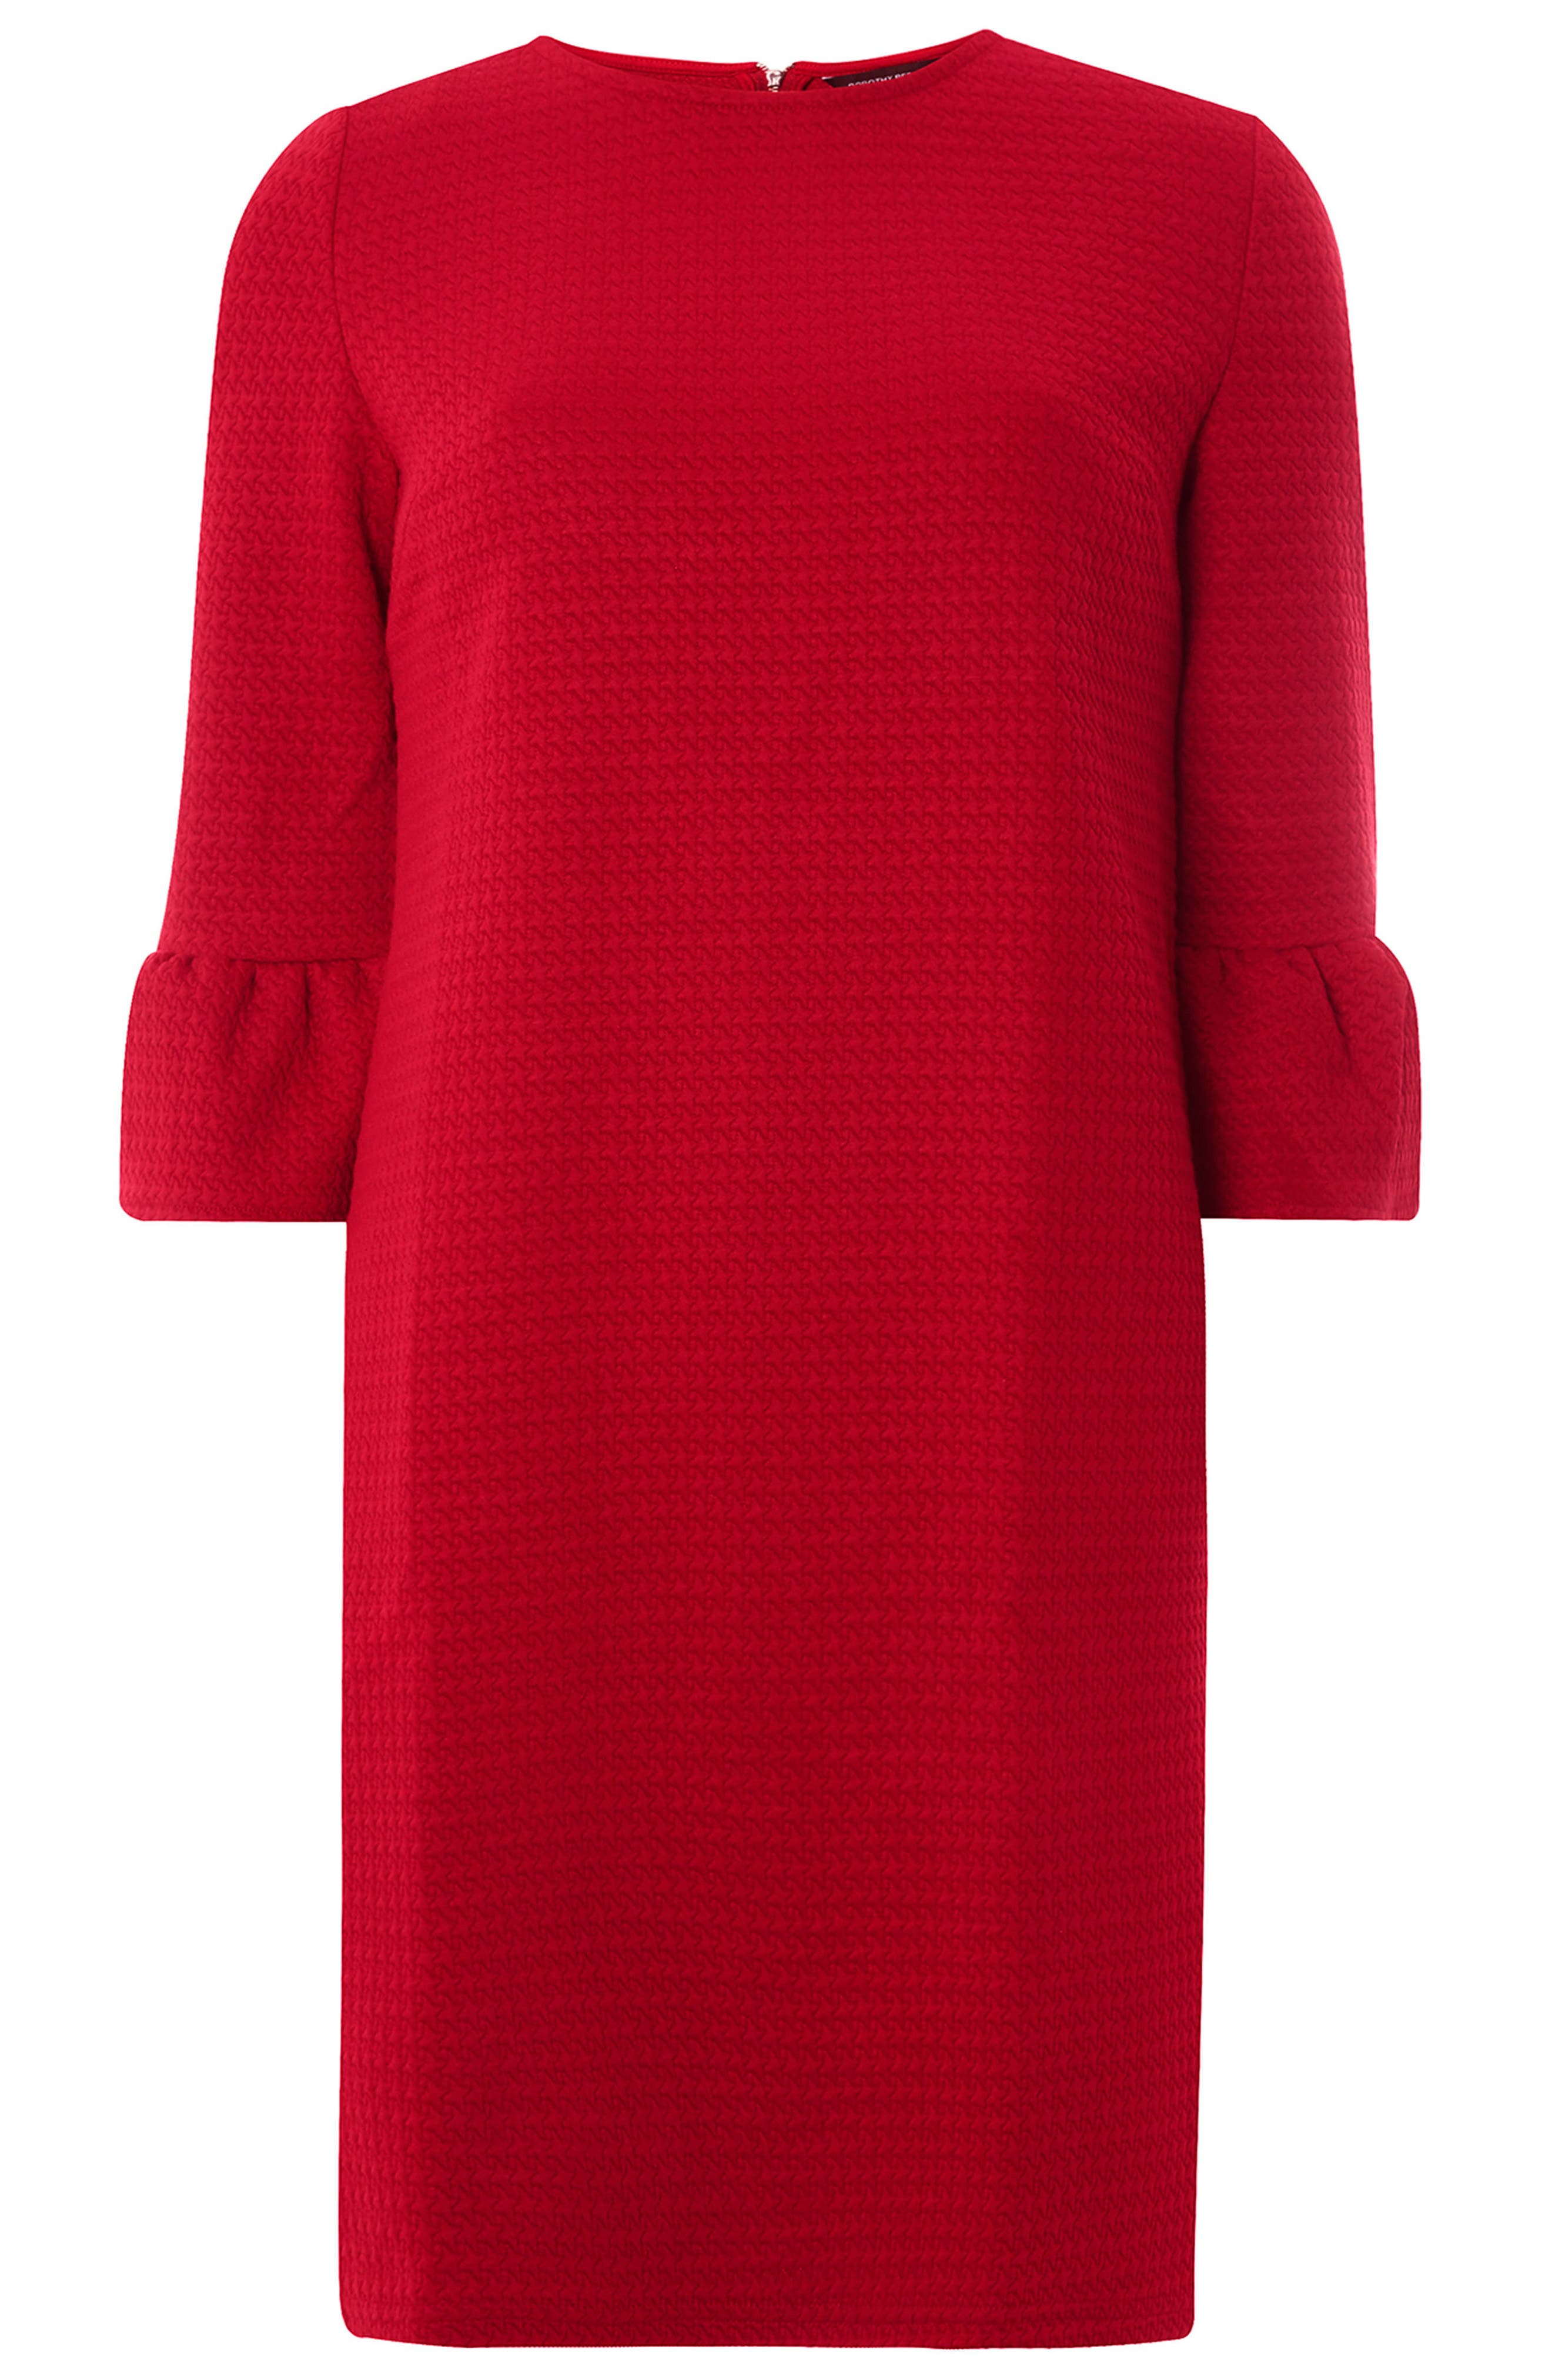 Ruffle Sleeve Shift Dress,                             Alternate thumbnail 5, color,                             Red